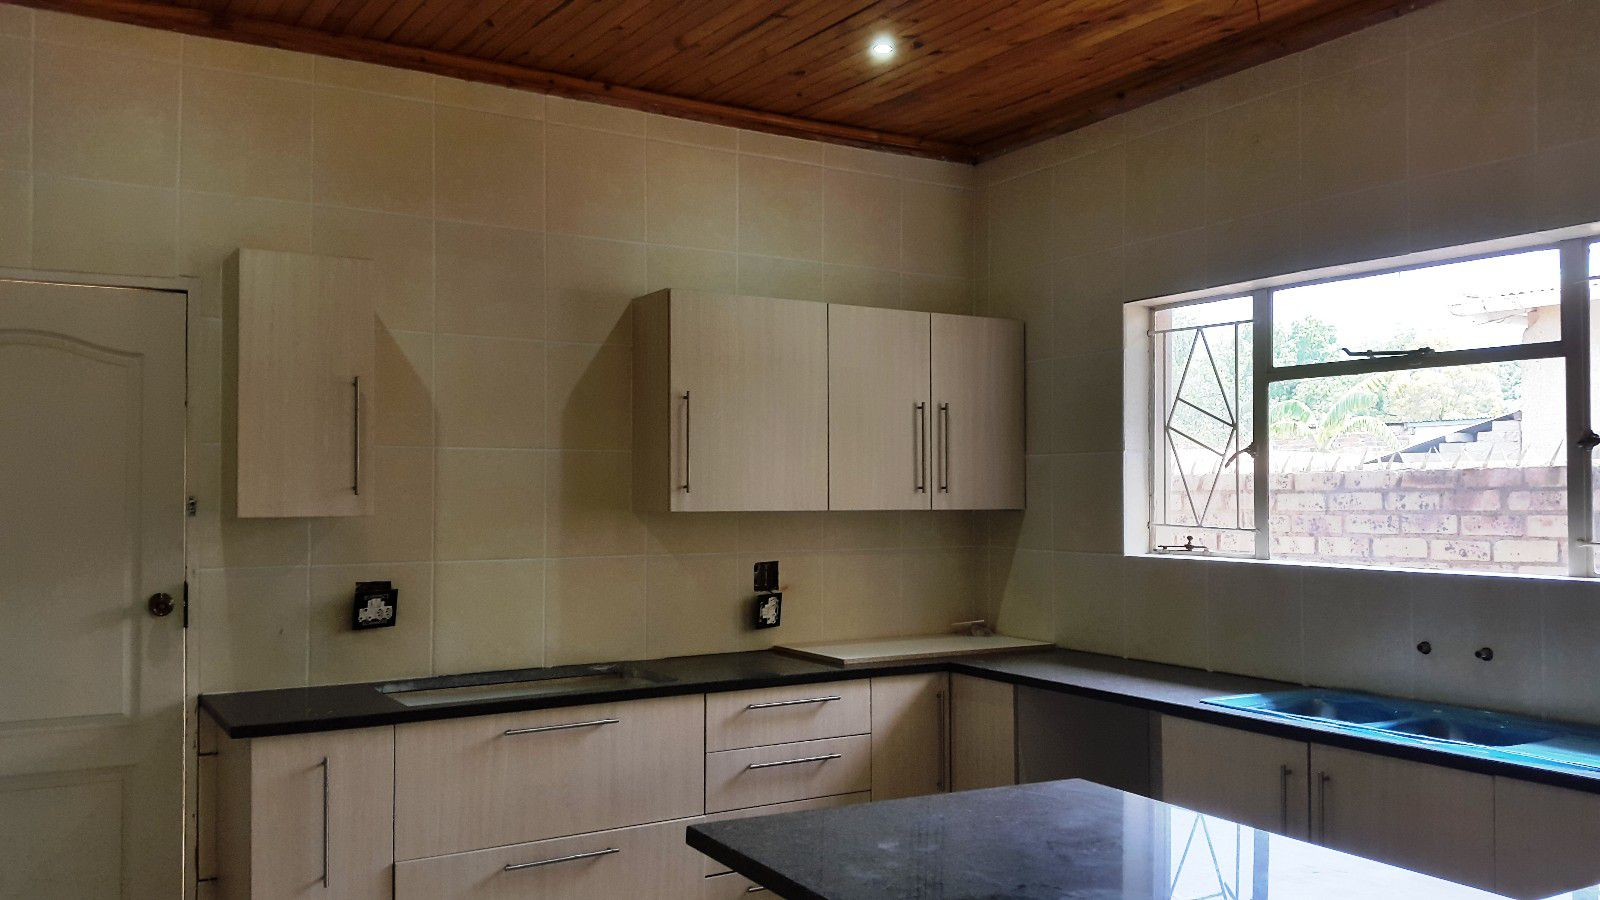 Potchefstroom Central property for sale. Ref No: 13410360. Picture no 9